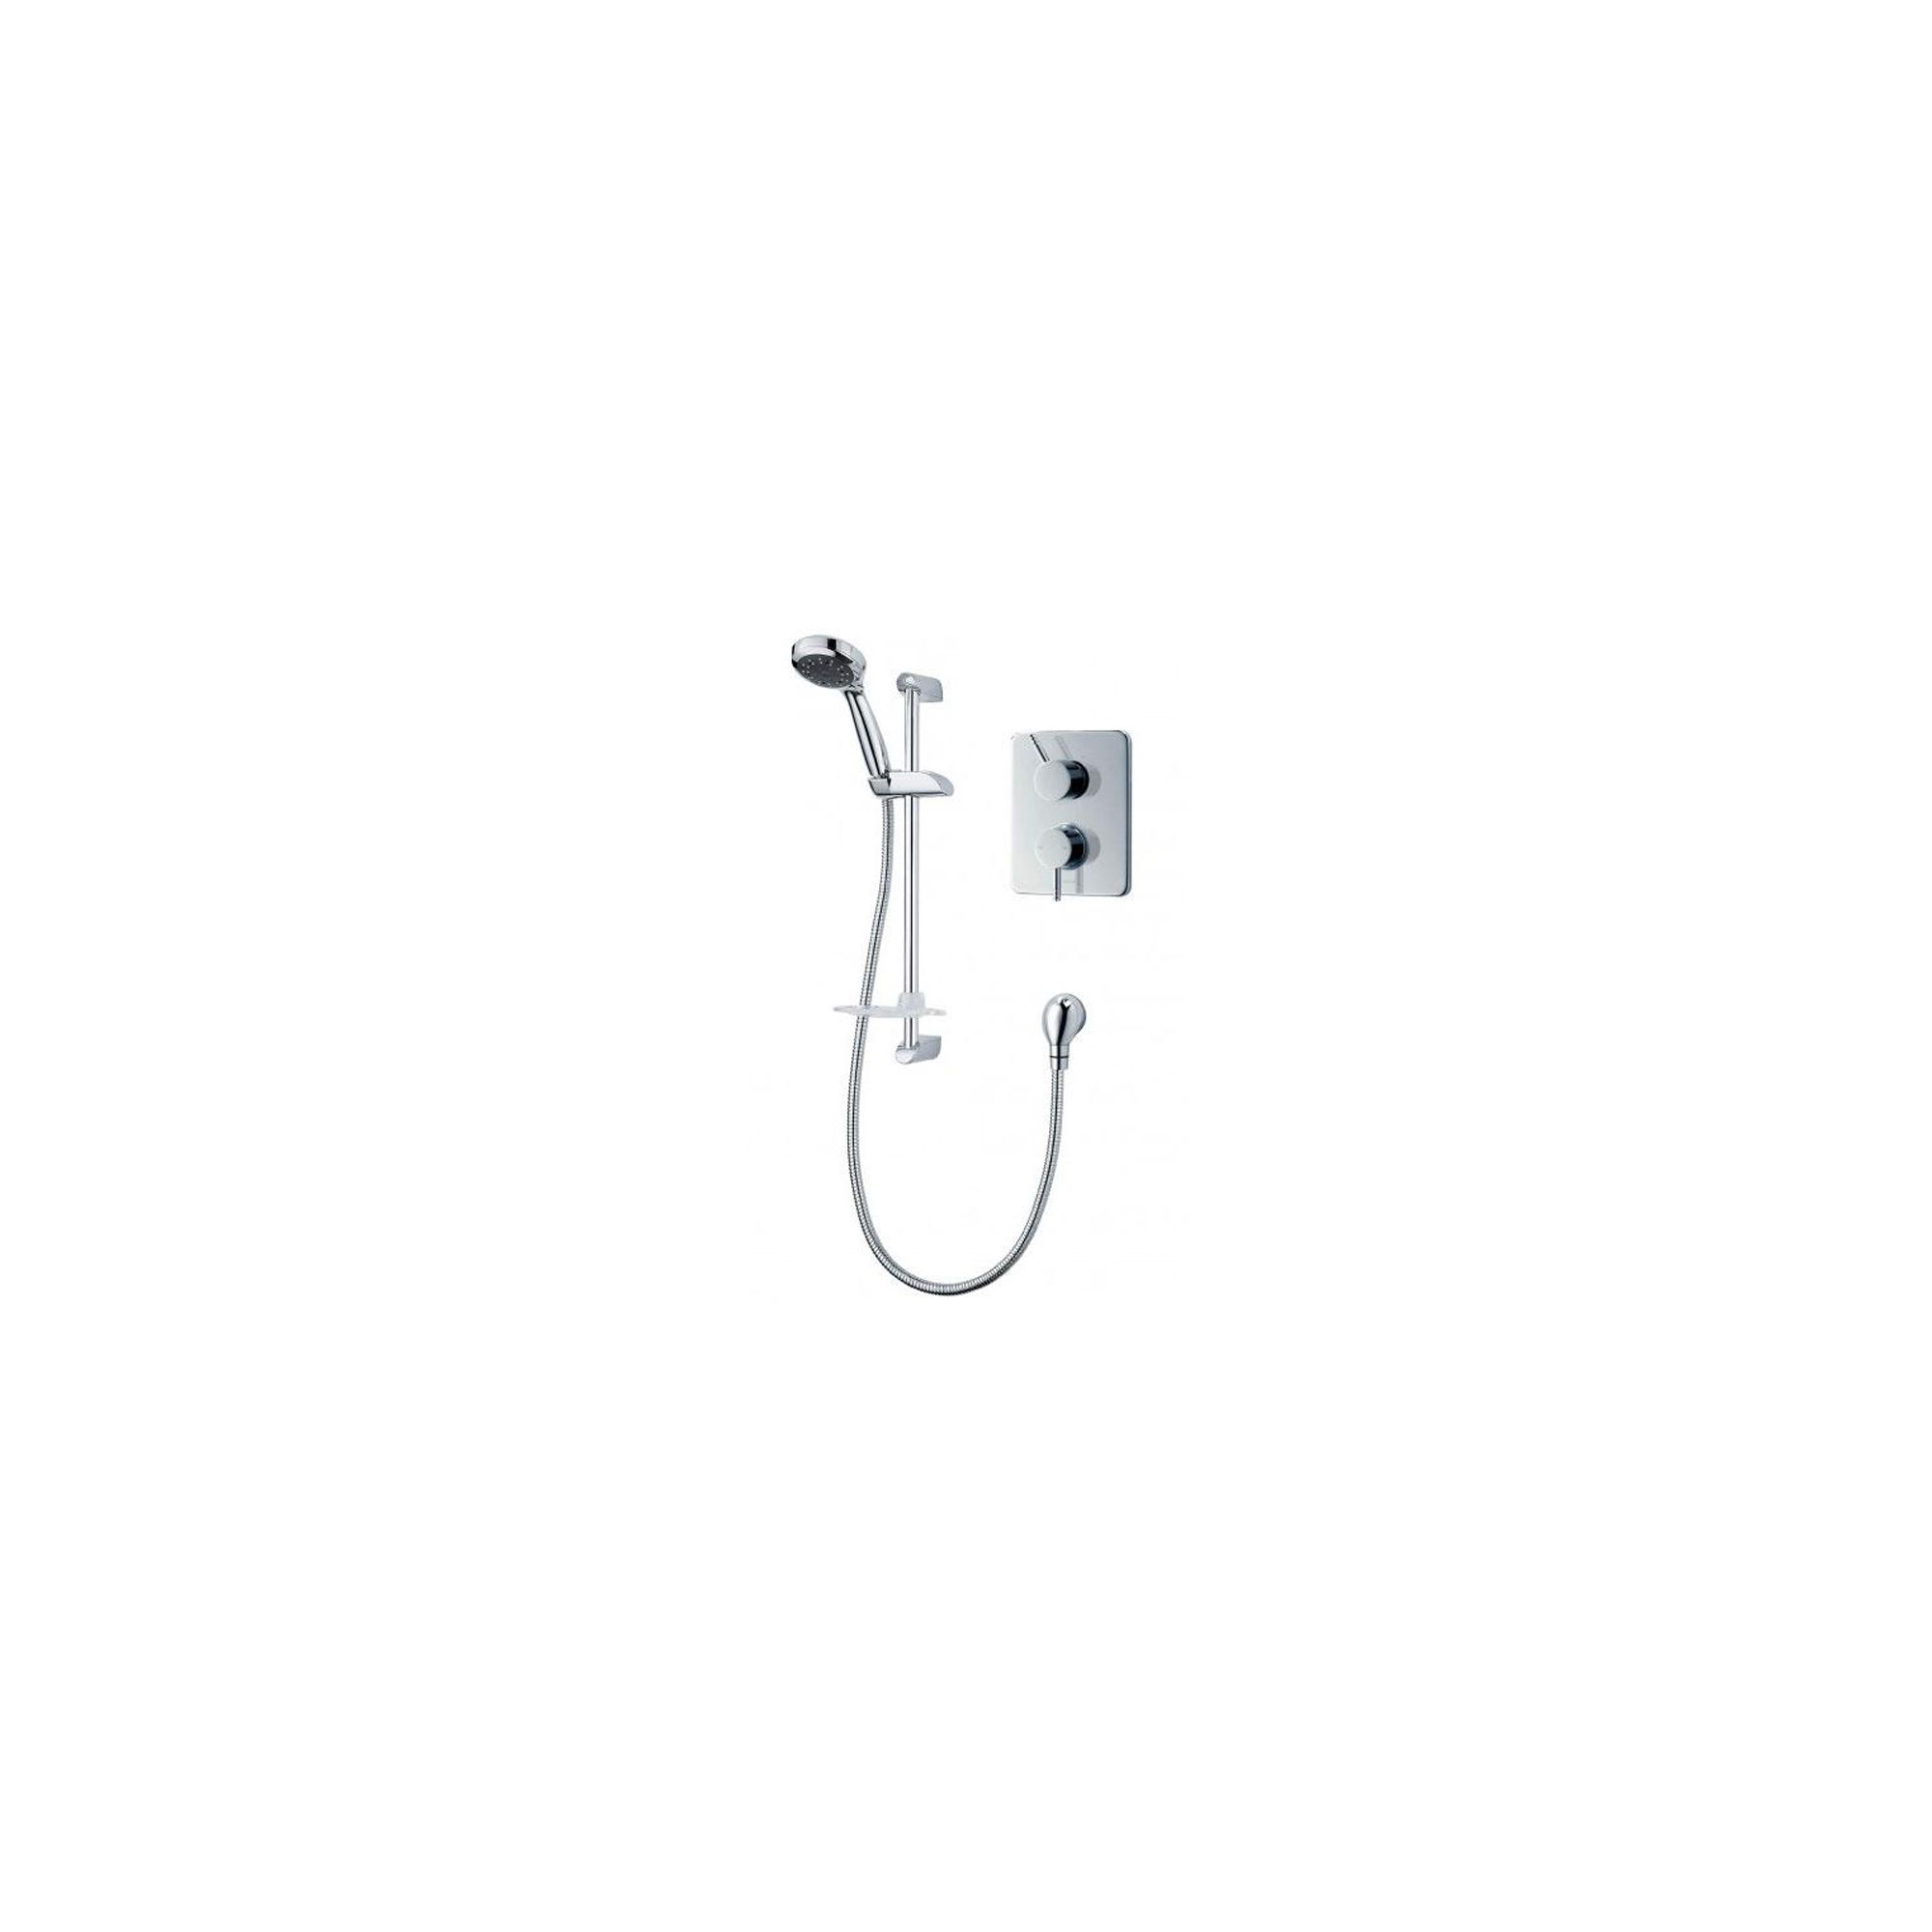 Triton Thames Thermostaitc Dual Control Shower Mixer Chrome at Tesco Direct